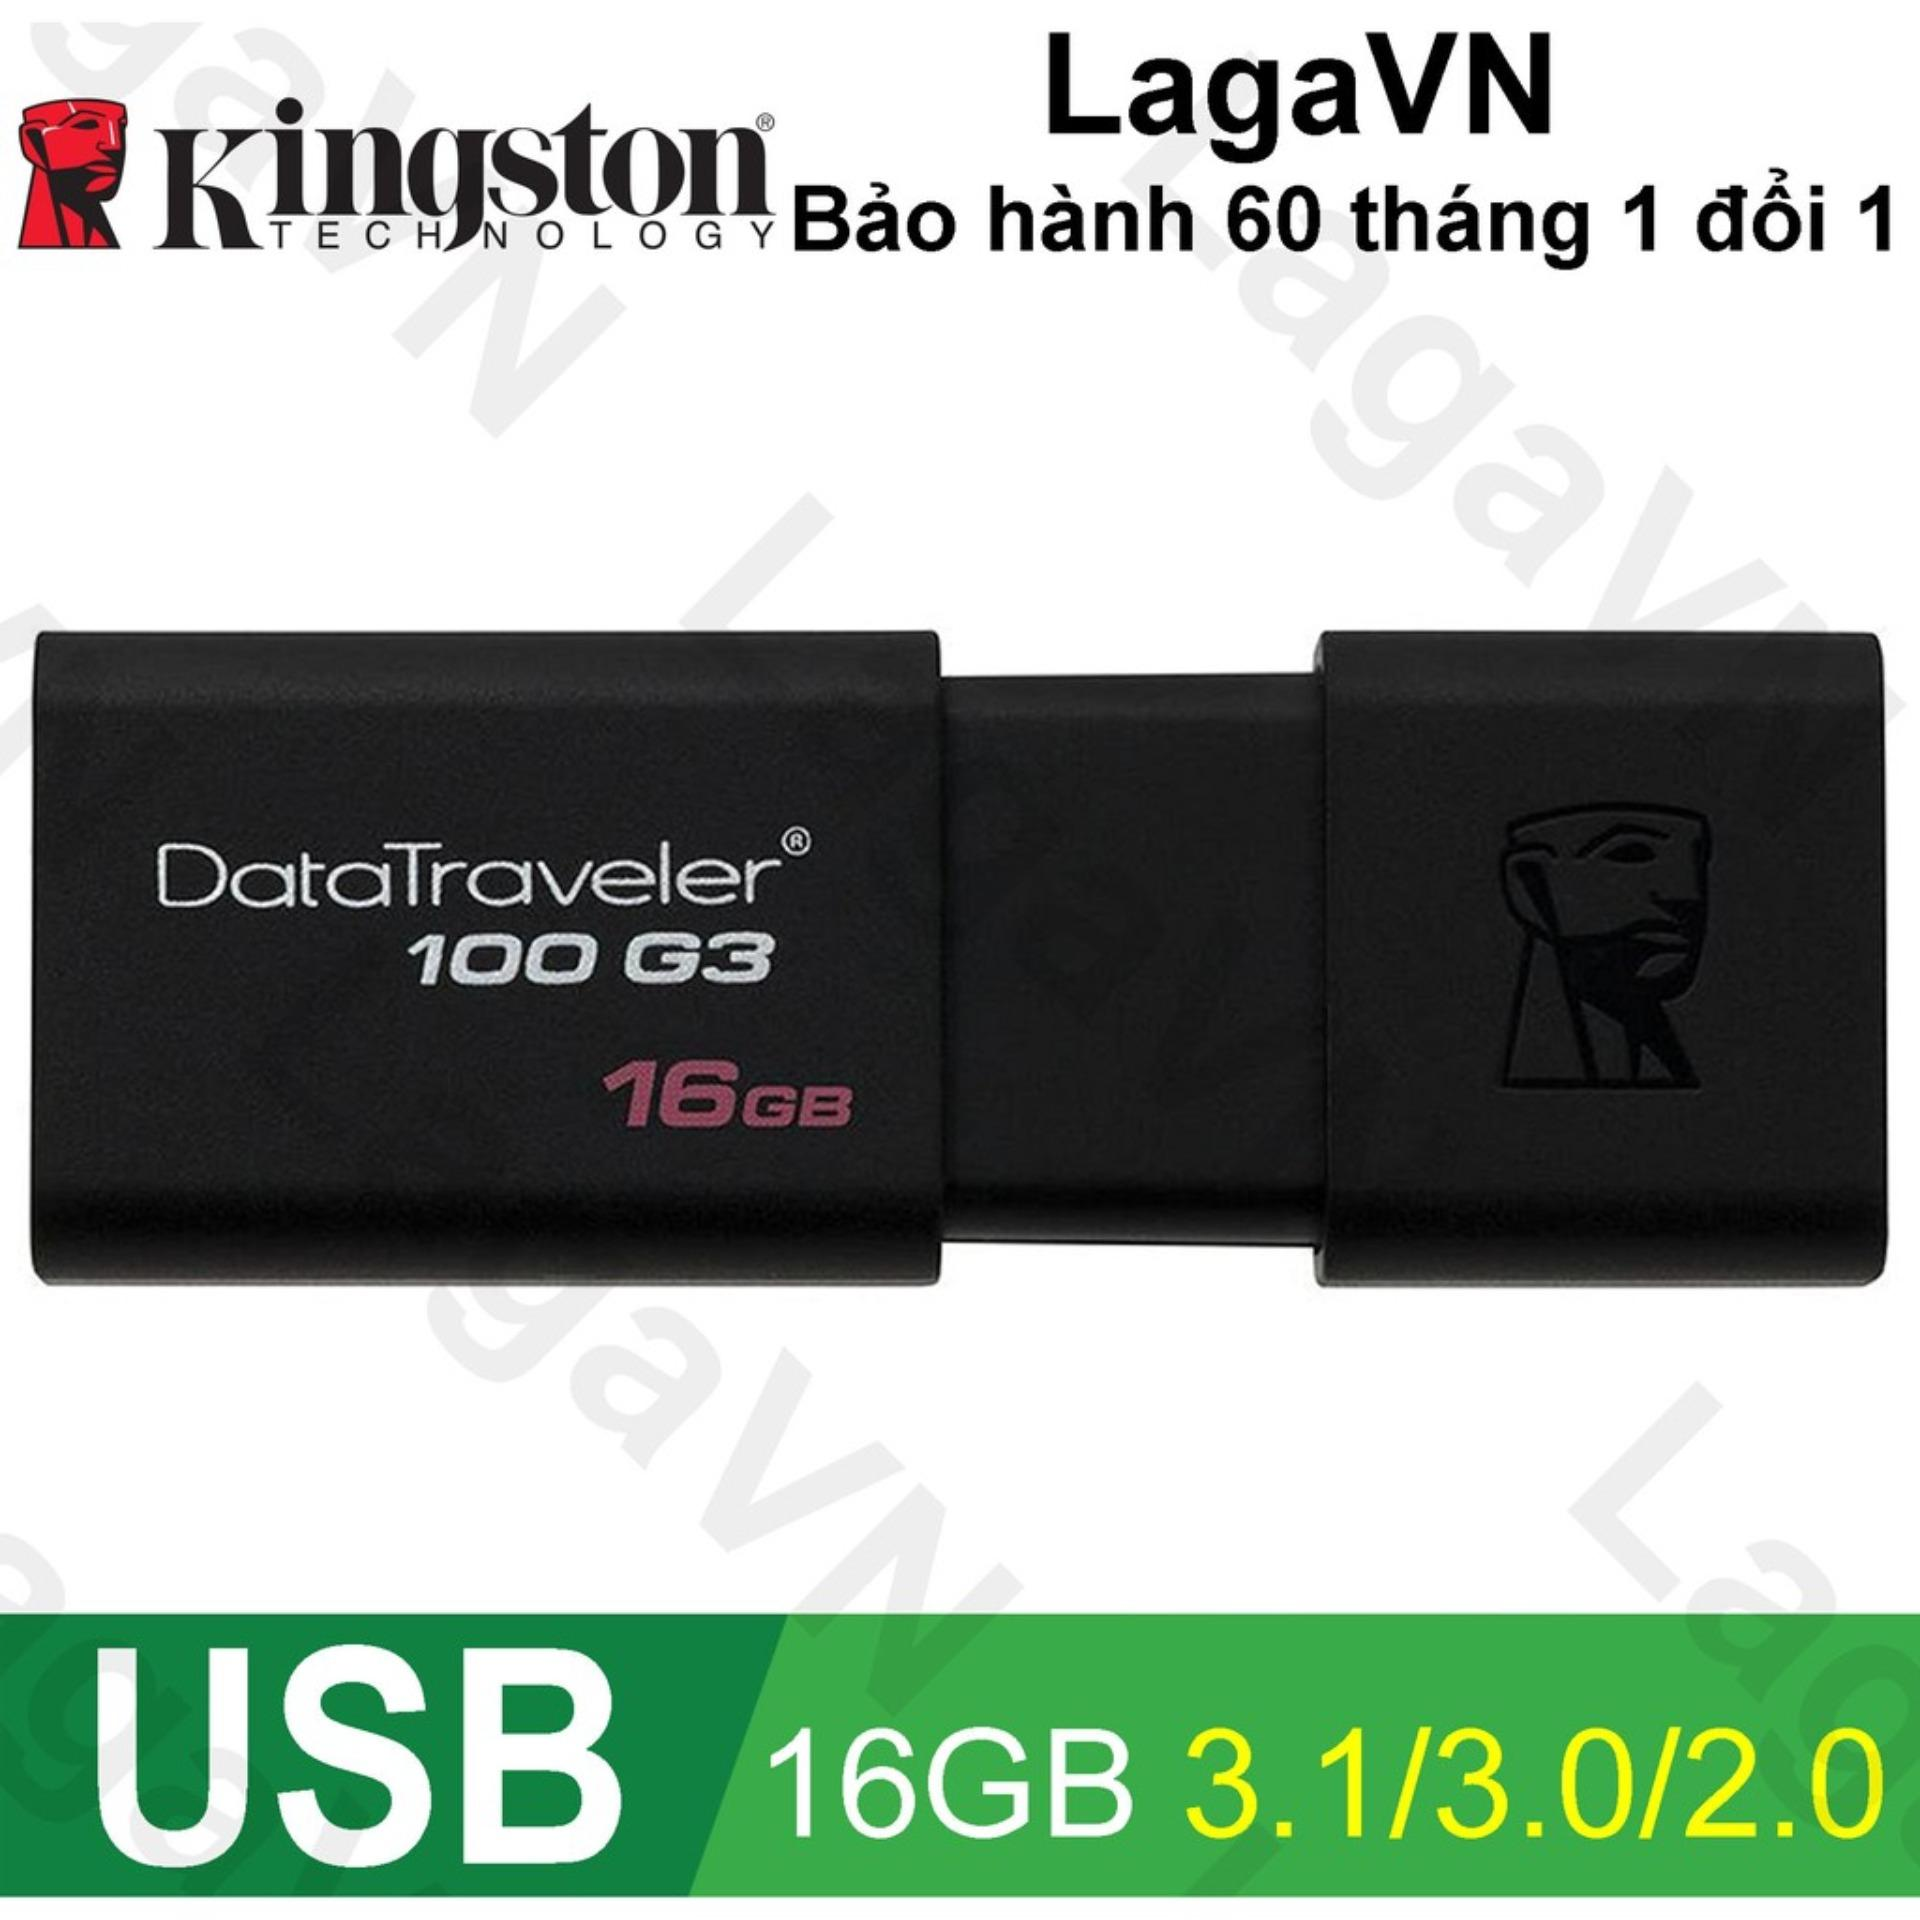 USB Kingston 16GB 3.0 Data Traveler DT 100 G3 - Chính thức